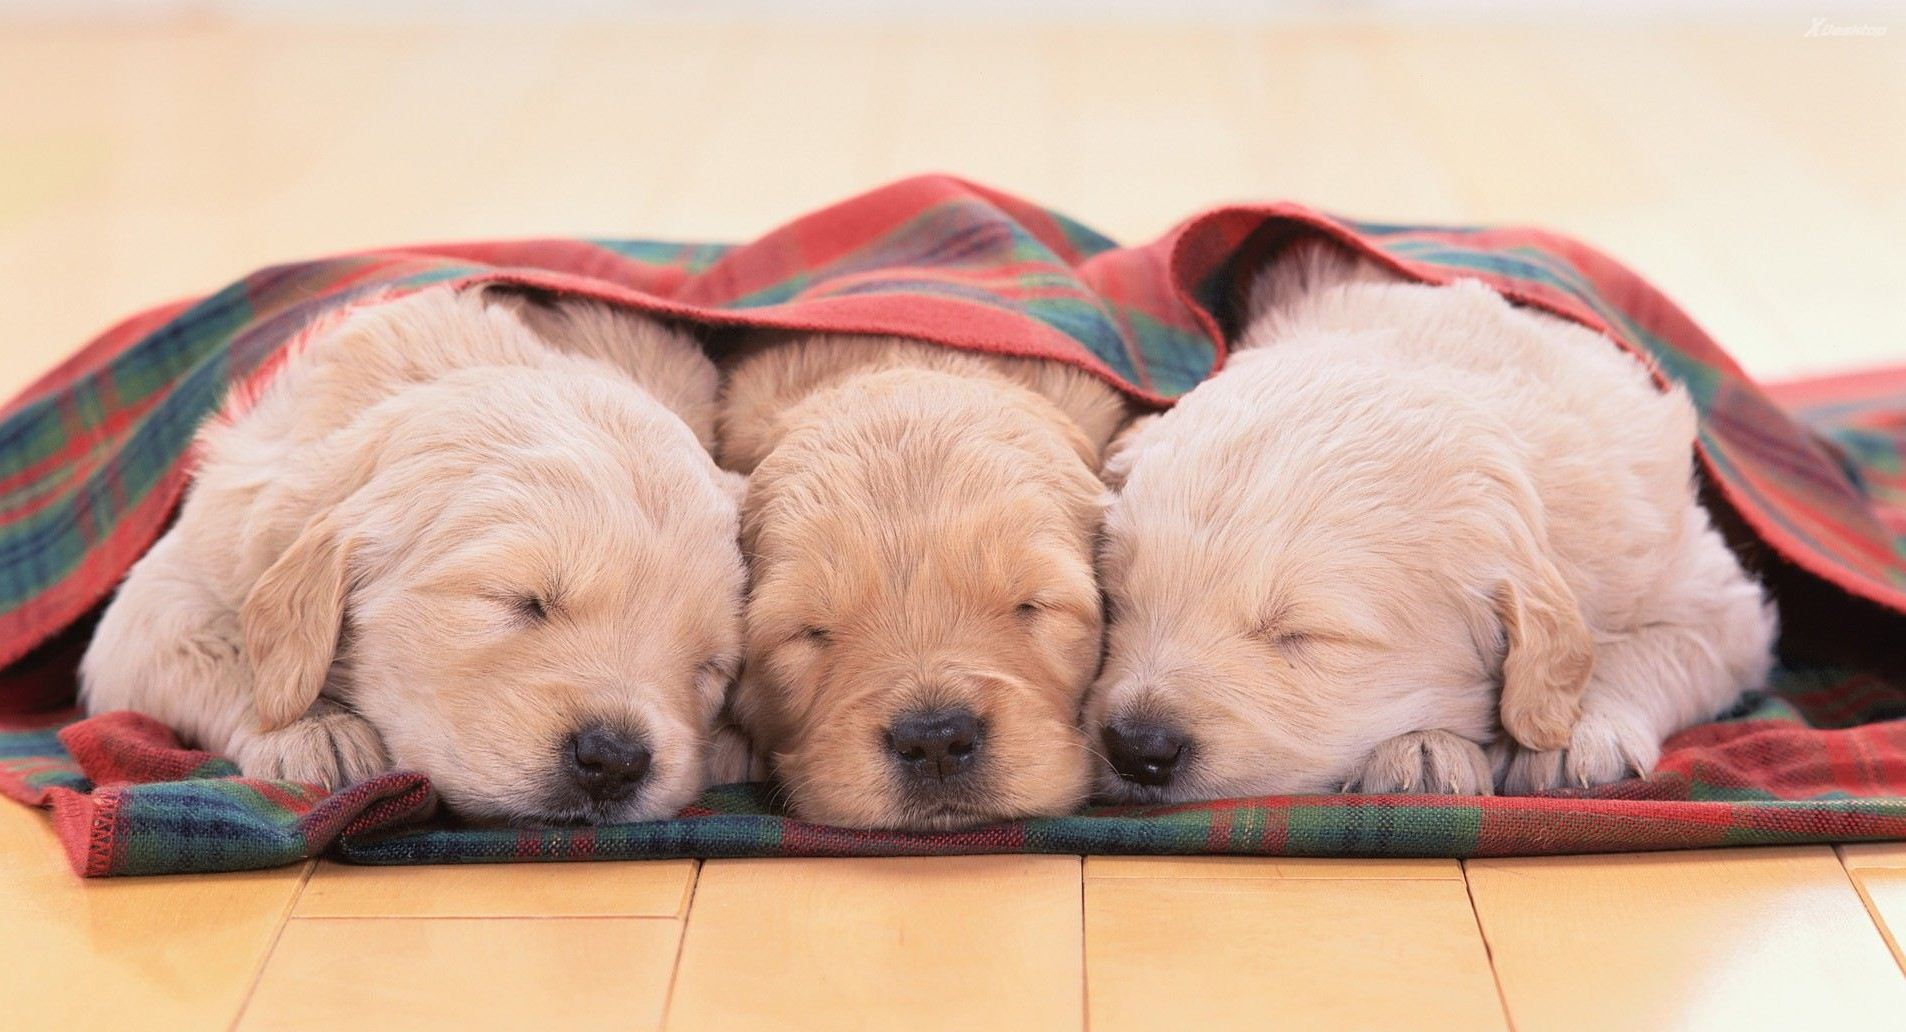 Three puppies napping under a blanket